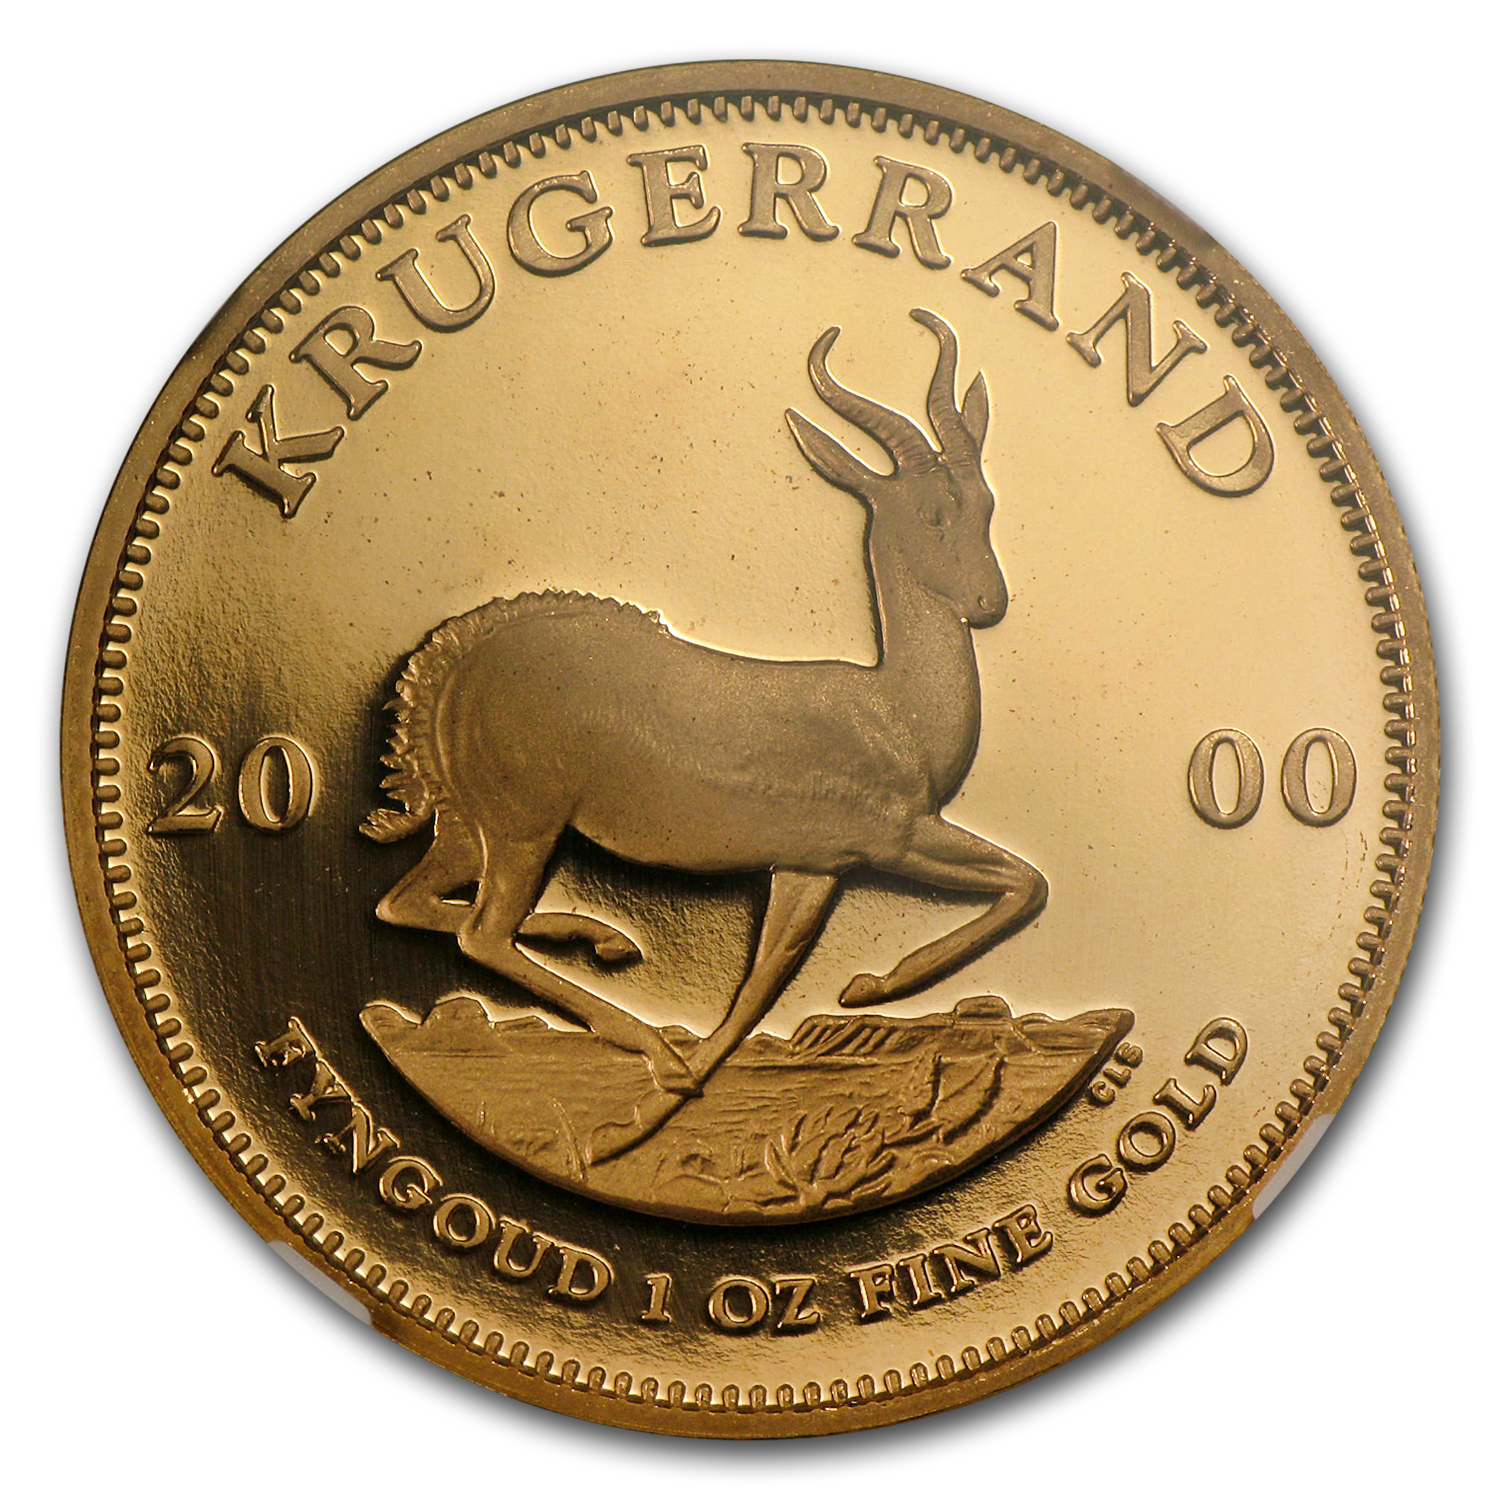 2000 South Africa 1 oz Gold Krugerrand PF-69 NGC